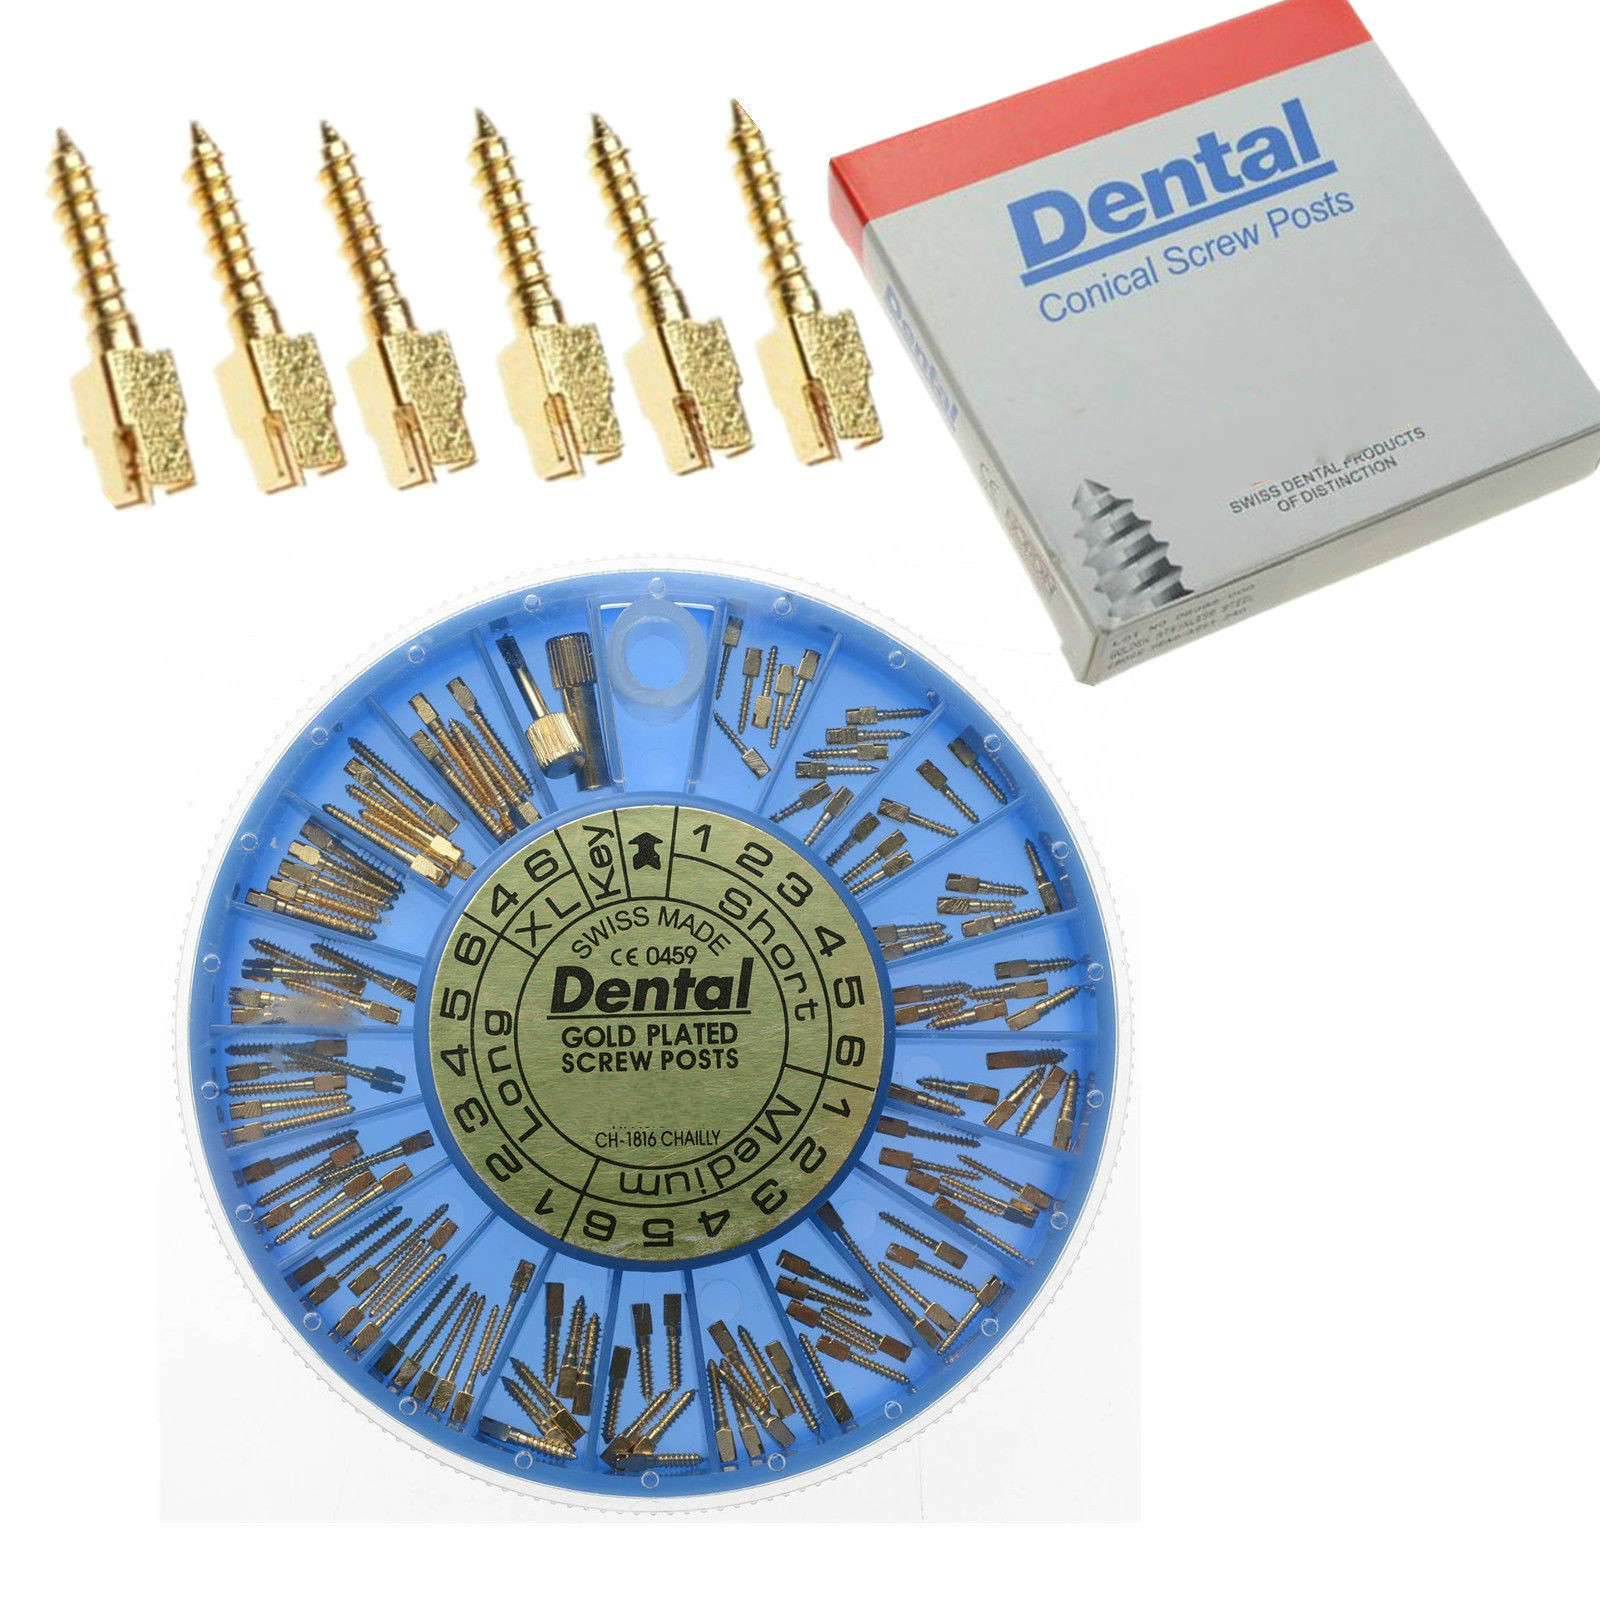 120 Pcs Dental Conical Screw Posts Kits Refills 24K Gold Plated Tapered Hot